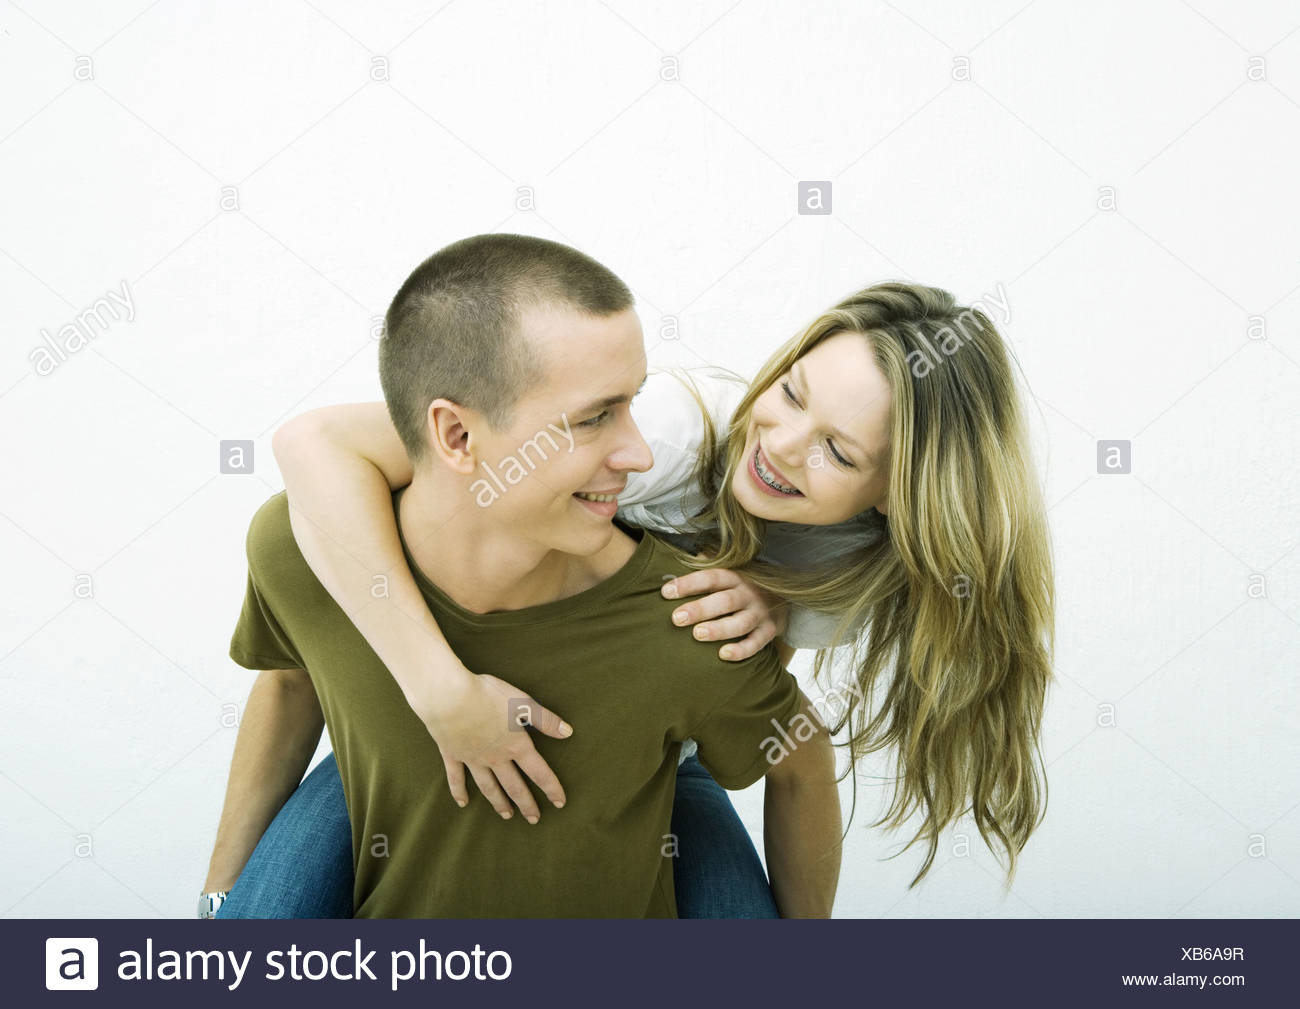 Images of shaved couples